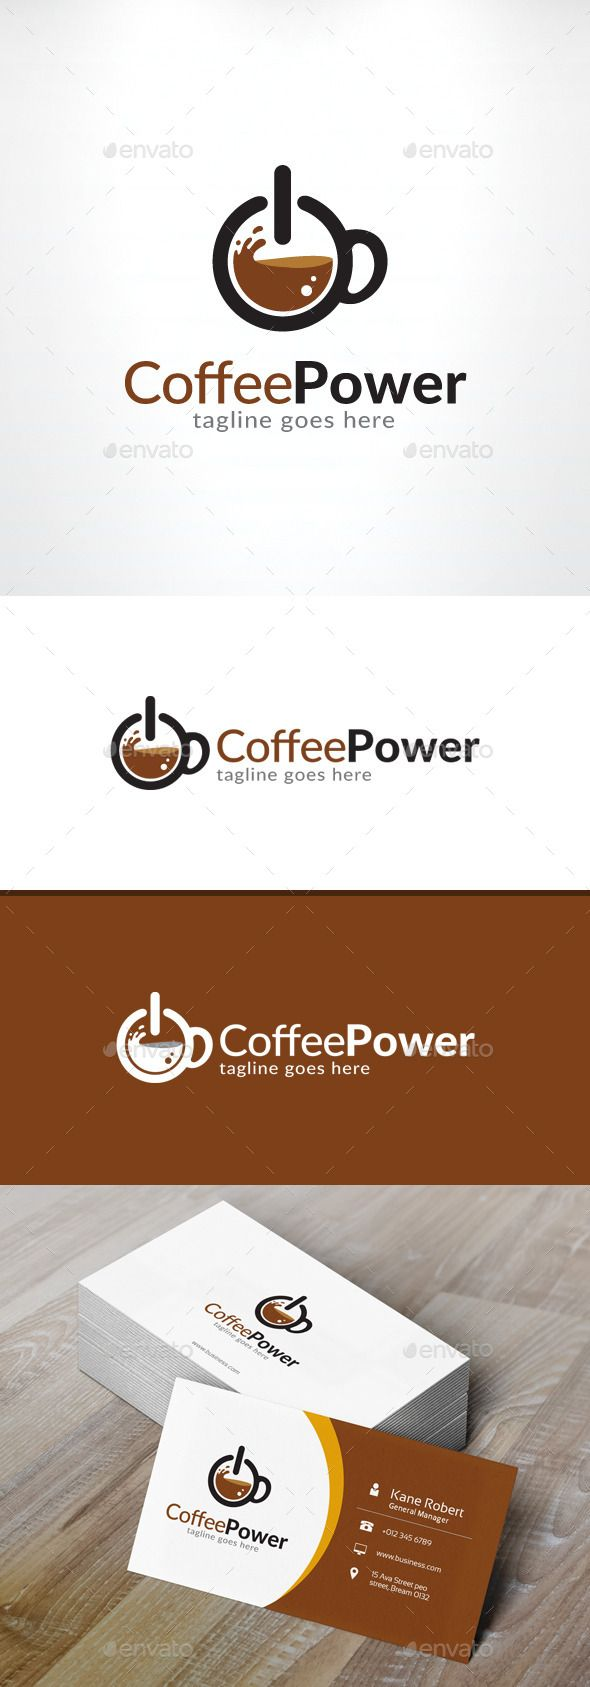 The coffee power logo three simple shapes. It turns the commonly found power ON/OFF logo and turned it into a coffee pot. Possibly used for a cafe